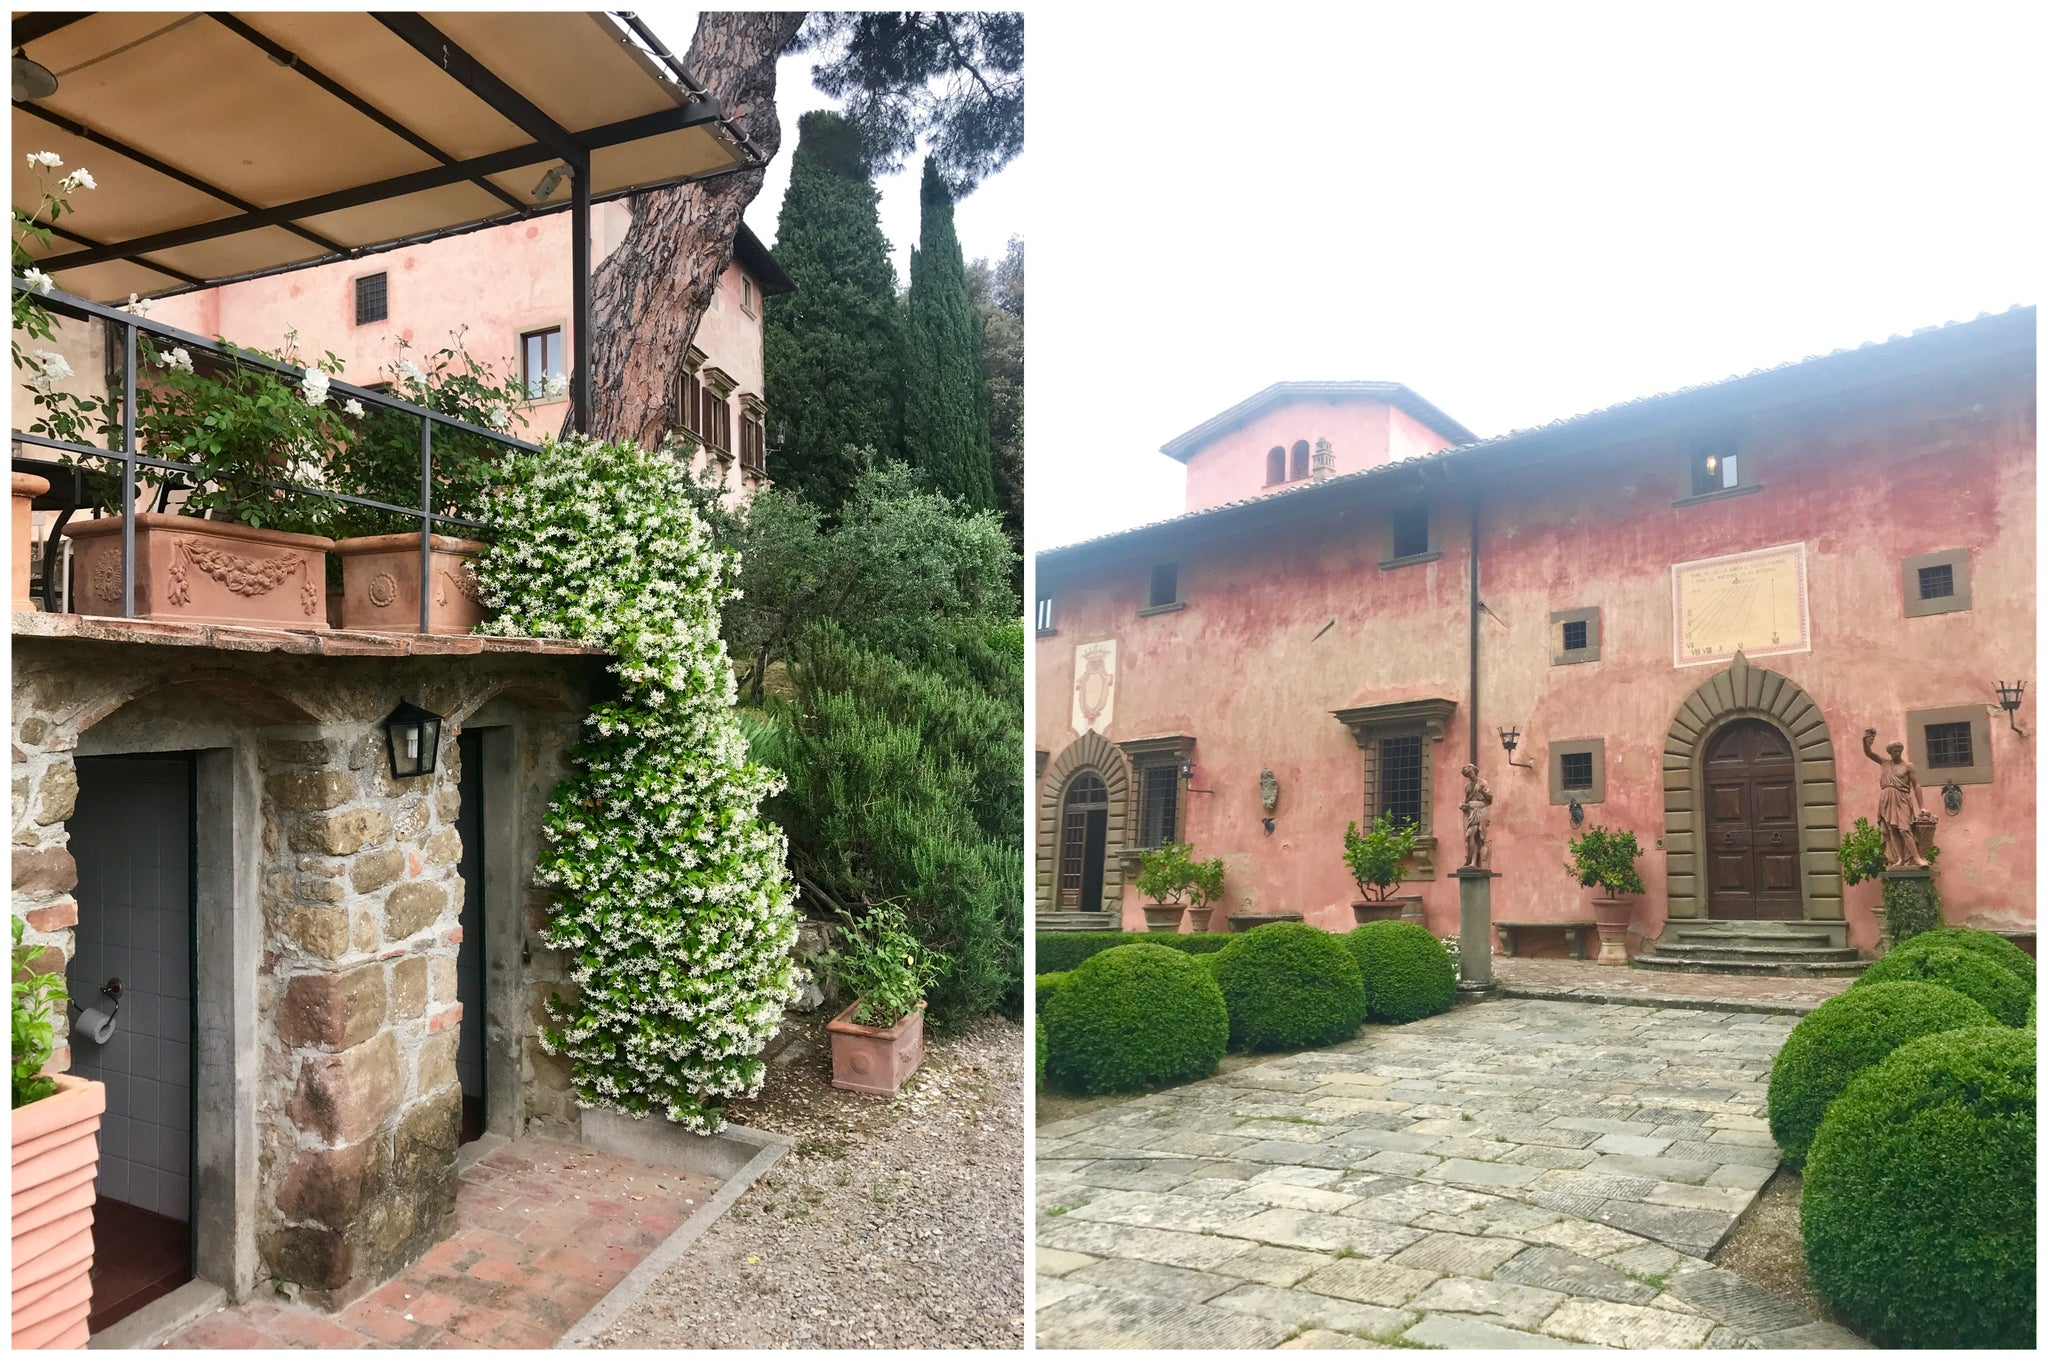 Greve in Chianti, Katie Dean Travel Guide Siena, Italy